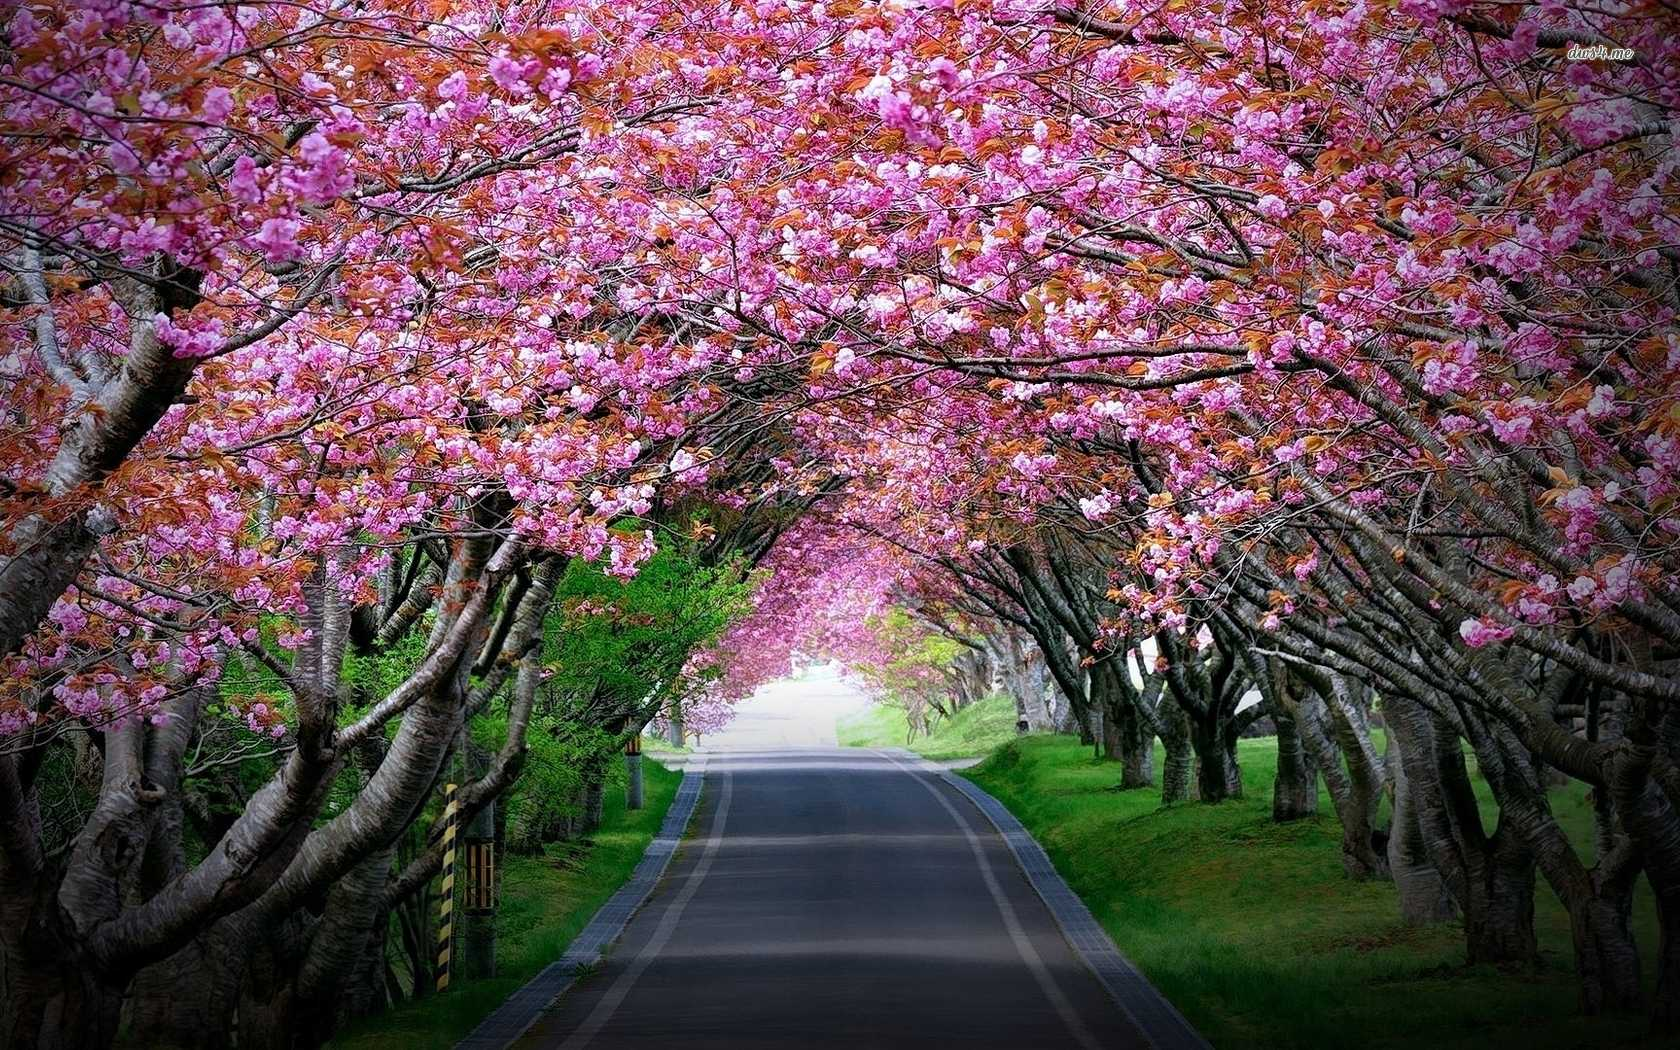 1680x1050 Jolly Pink Cherry Blossoms Tree Tunnel Wallpaper Nature As Wells